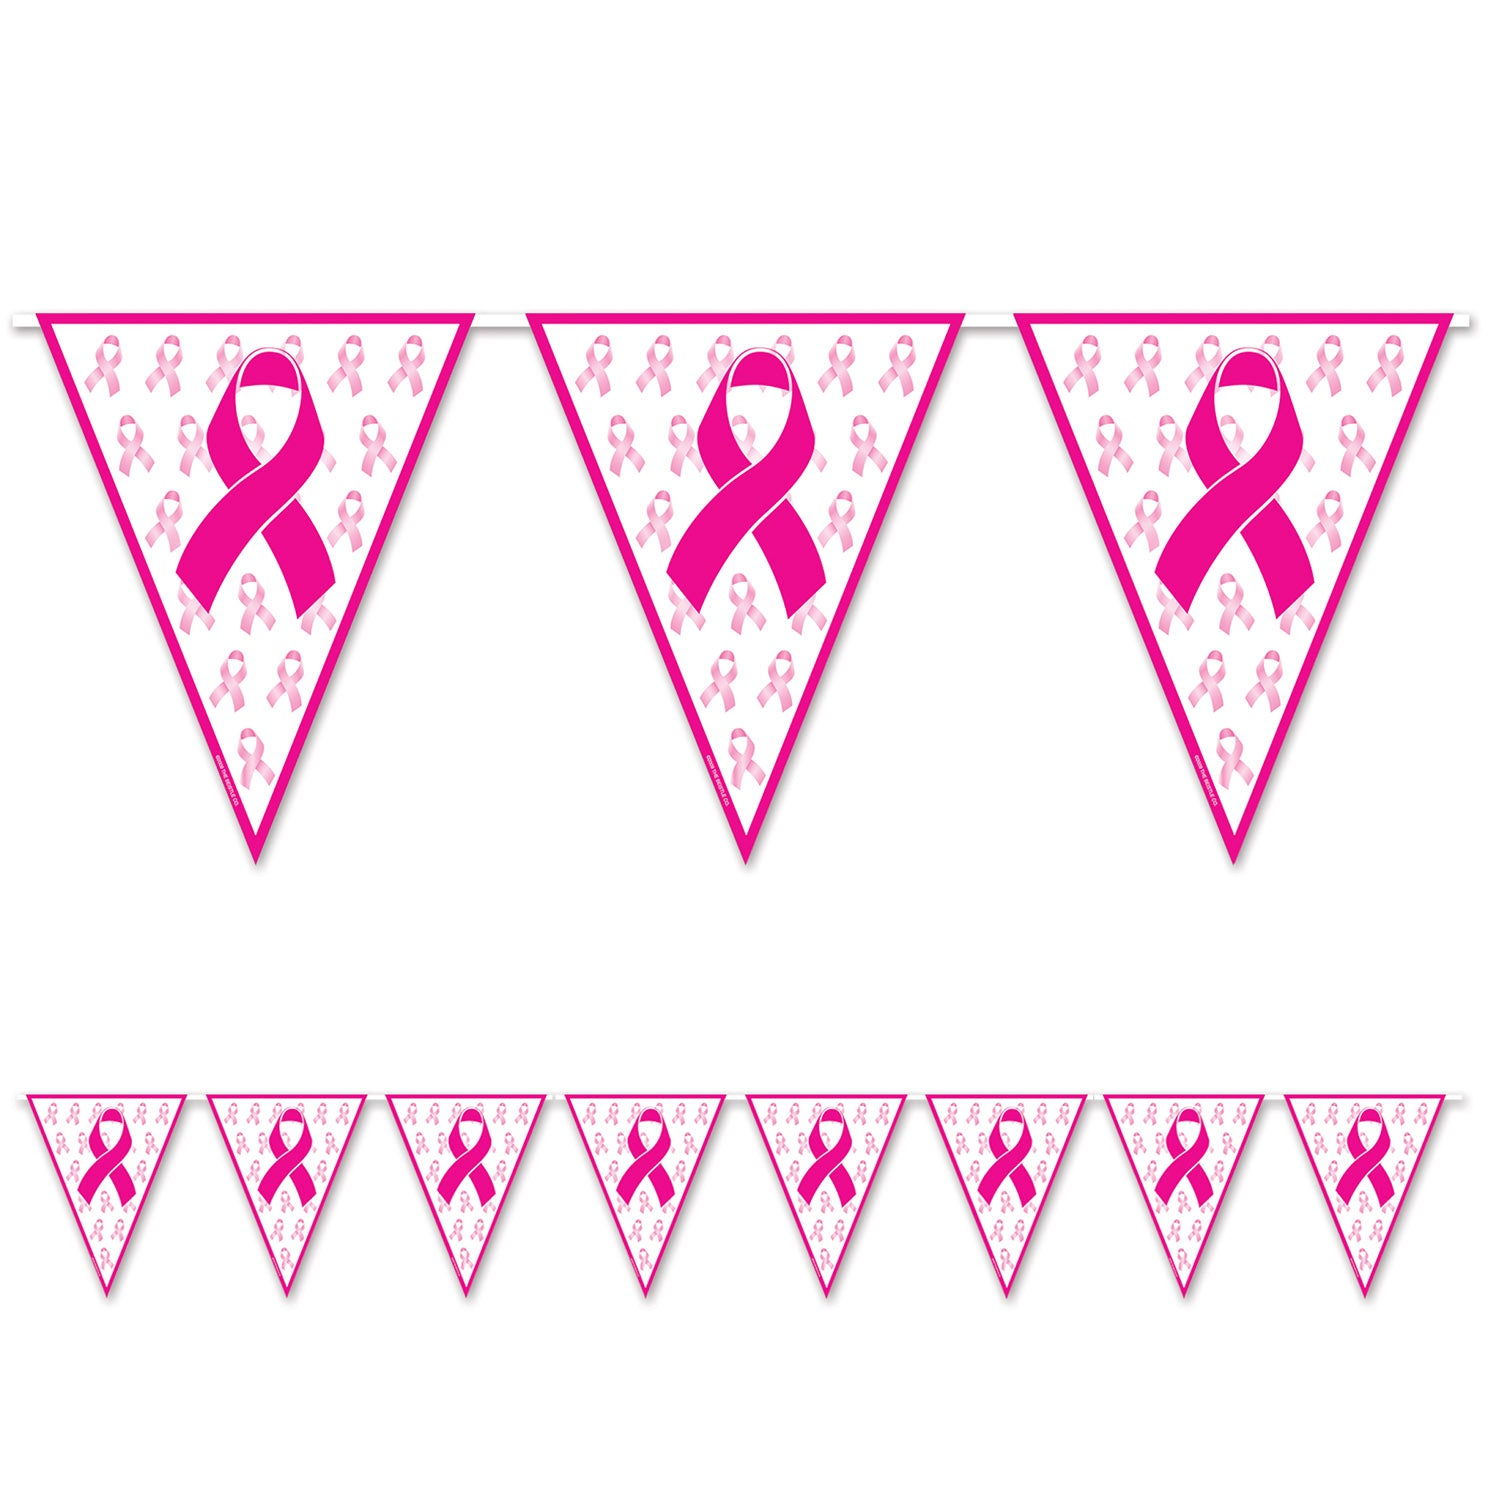 Pink Ribbon Pennant Banner by Beistle - Pink Ribbon Theme Decorations